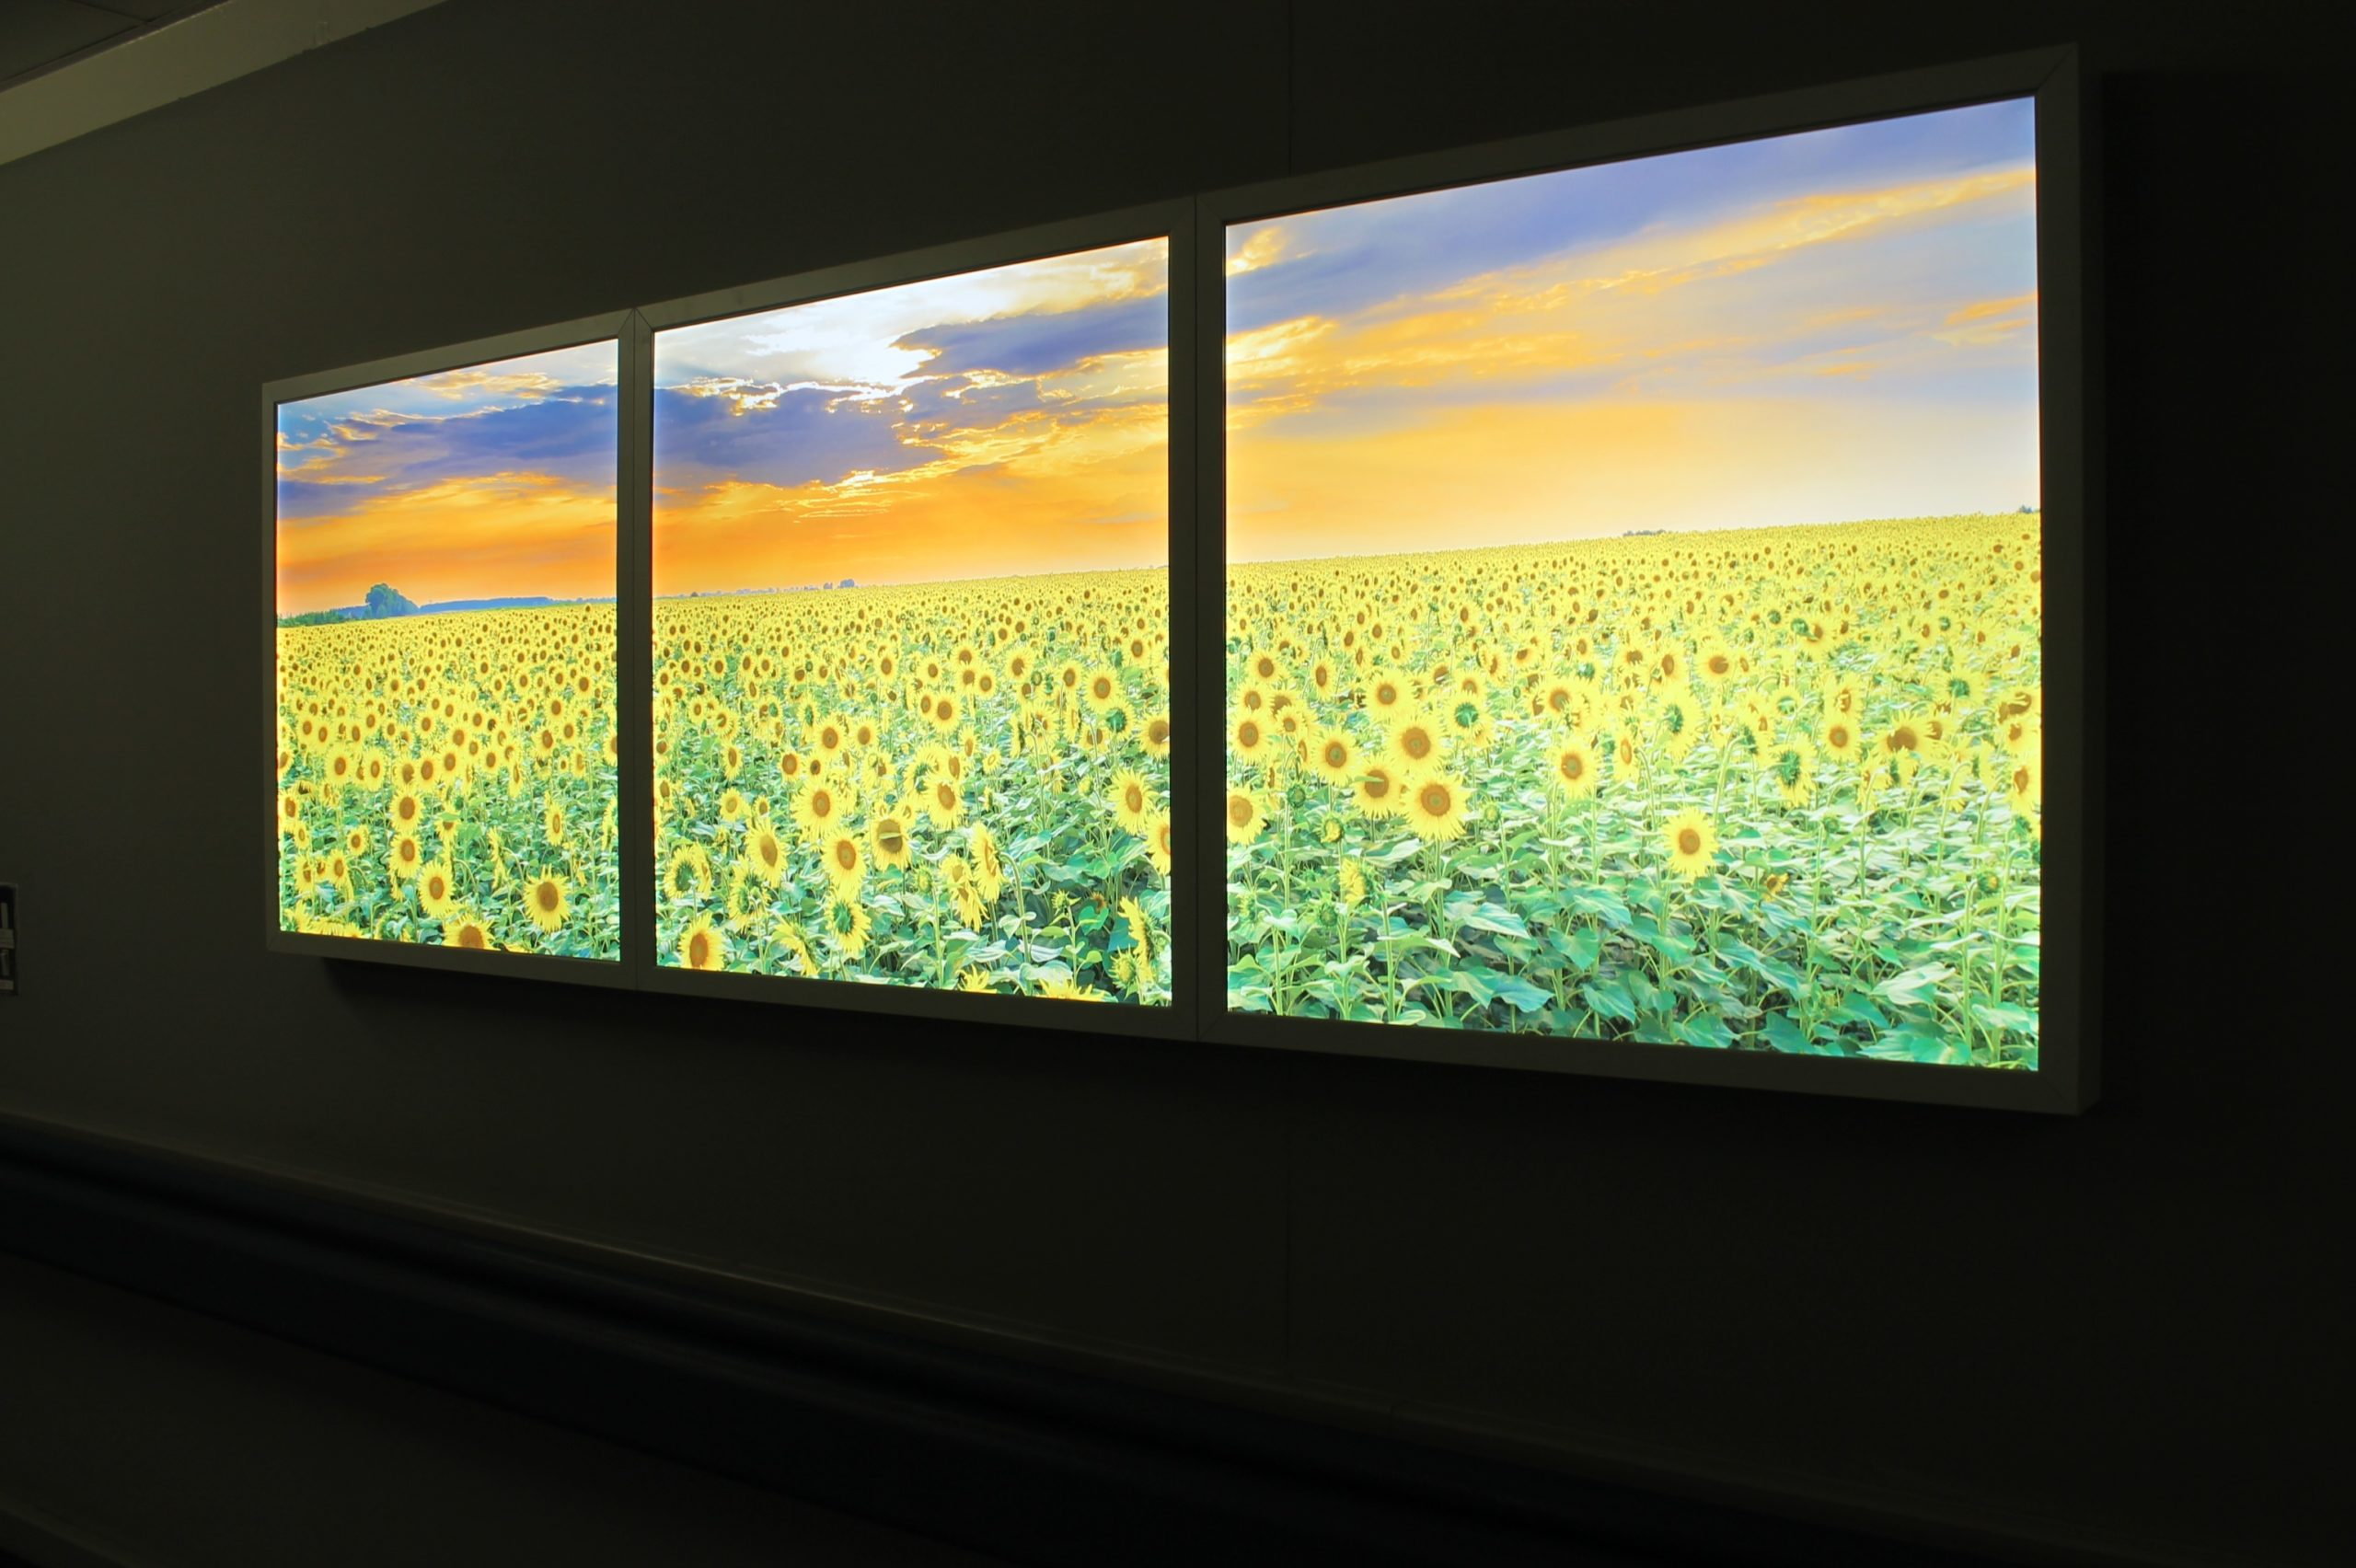 Light boxes provide comfort to bereaved families in hospital